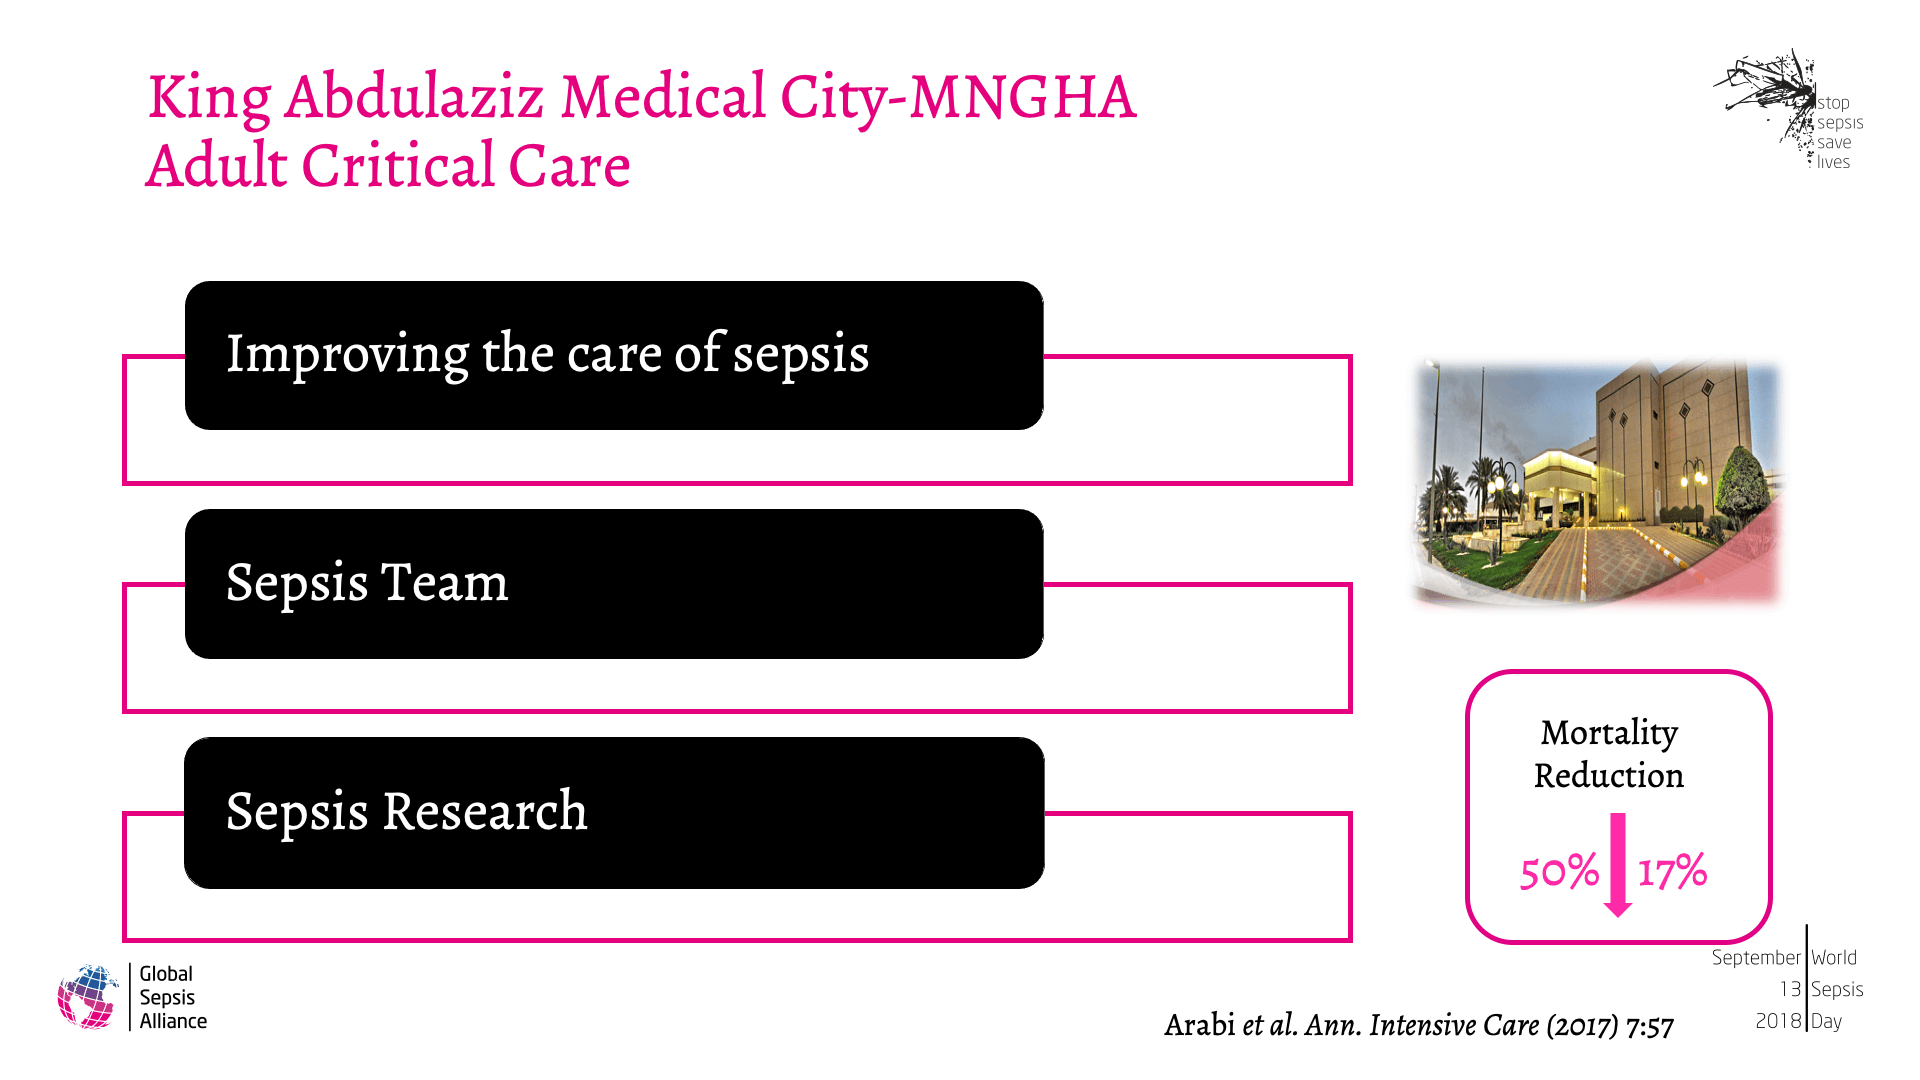 Progress of the National Sepsis Plan in Saudi Arabia13.png